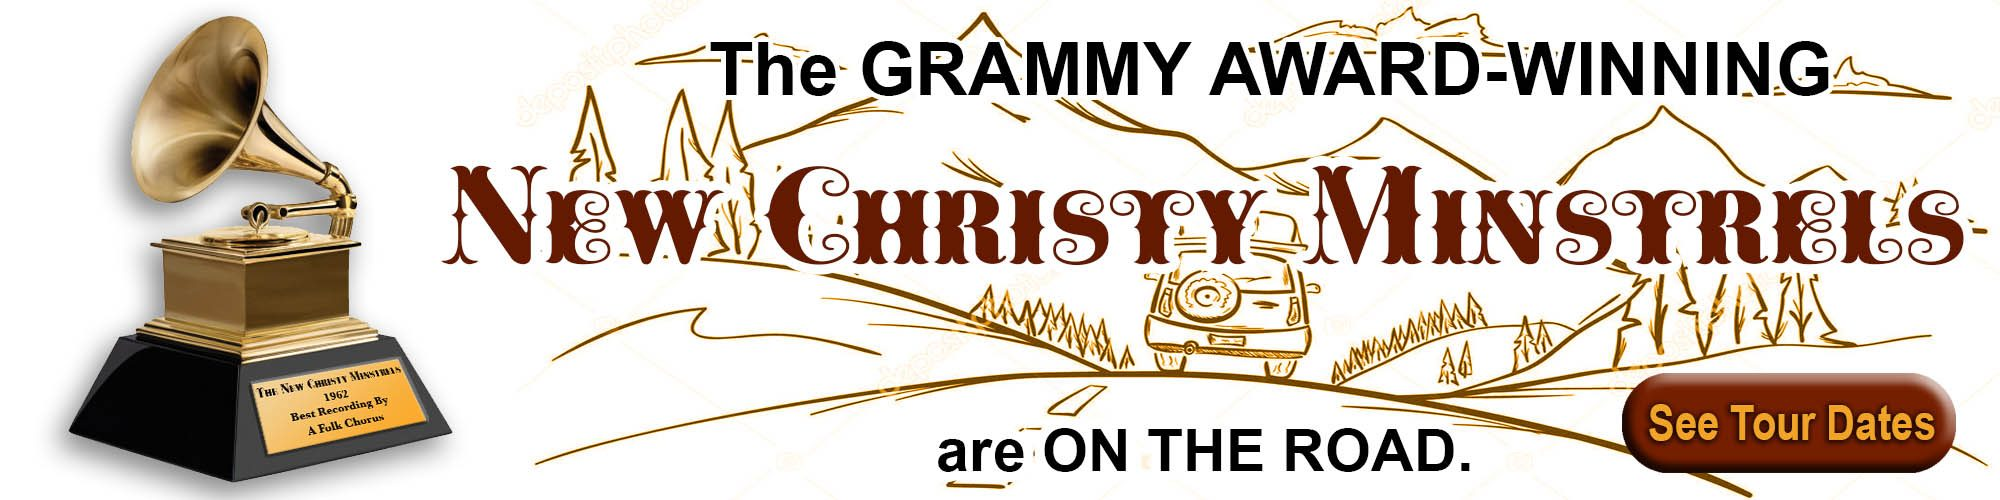 Christy Minstrels_web promo-Grammy-2